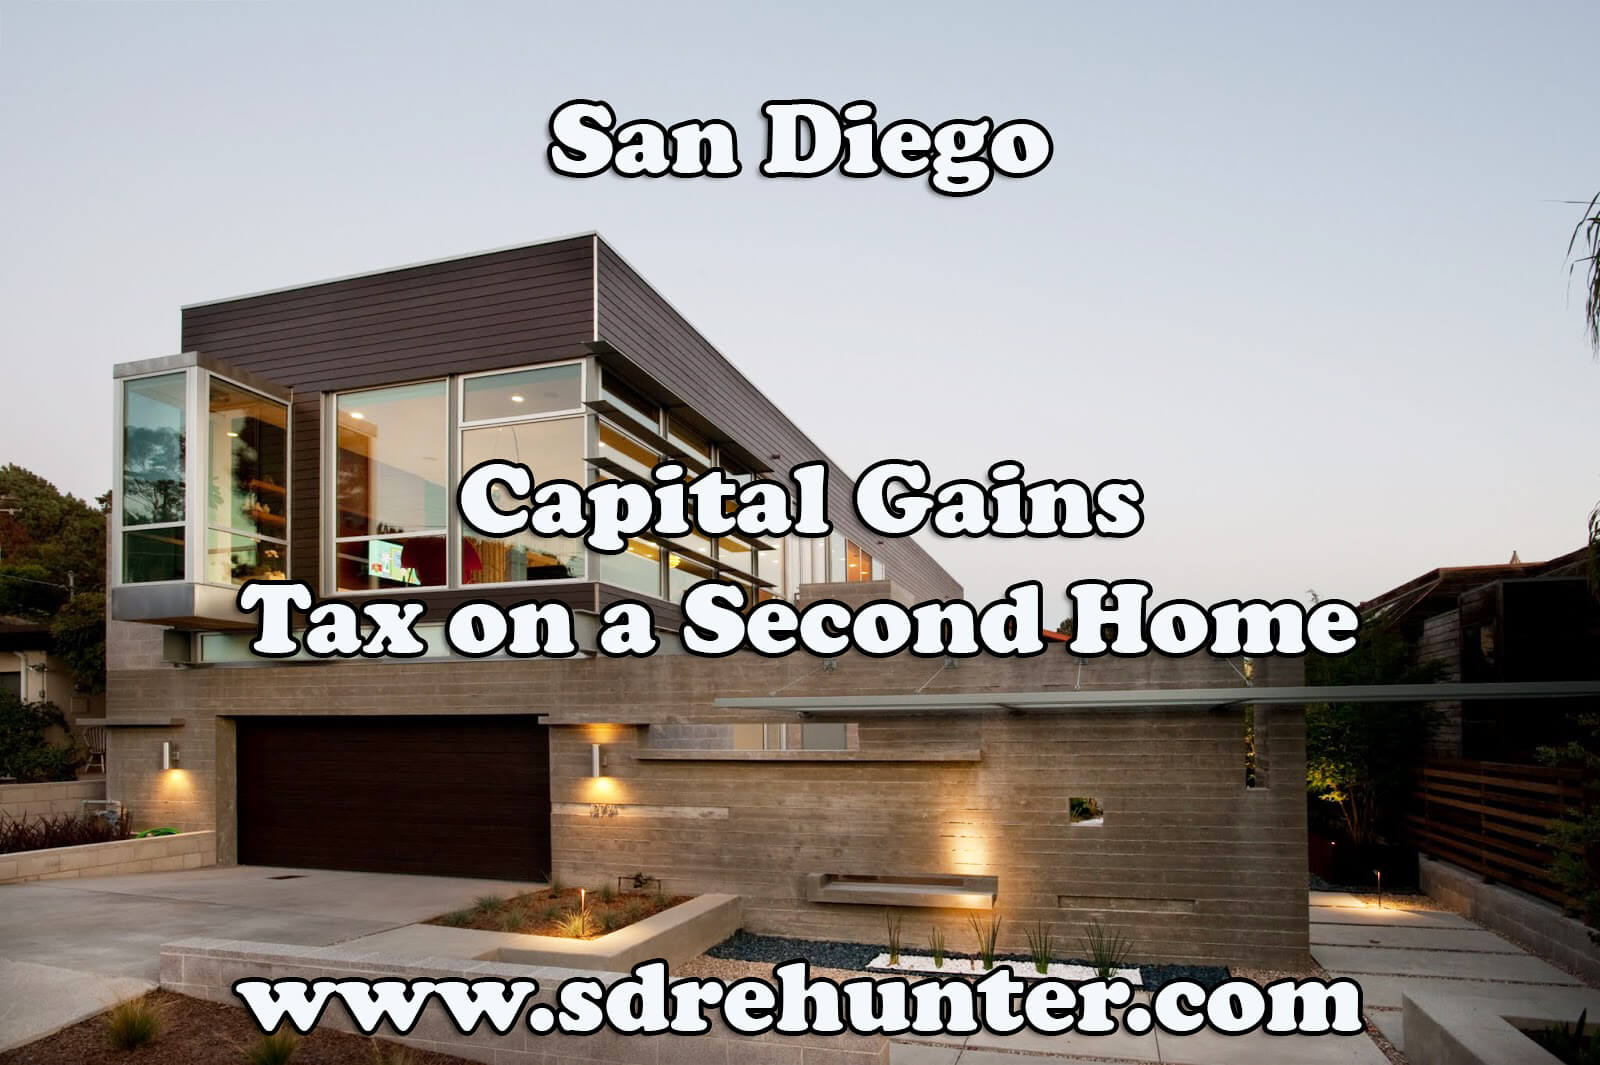 San Diego Capital Gains Tax on a Second Home (2017 Update)